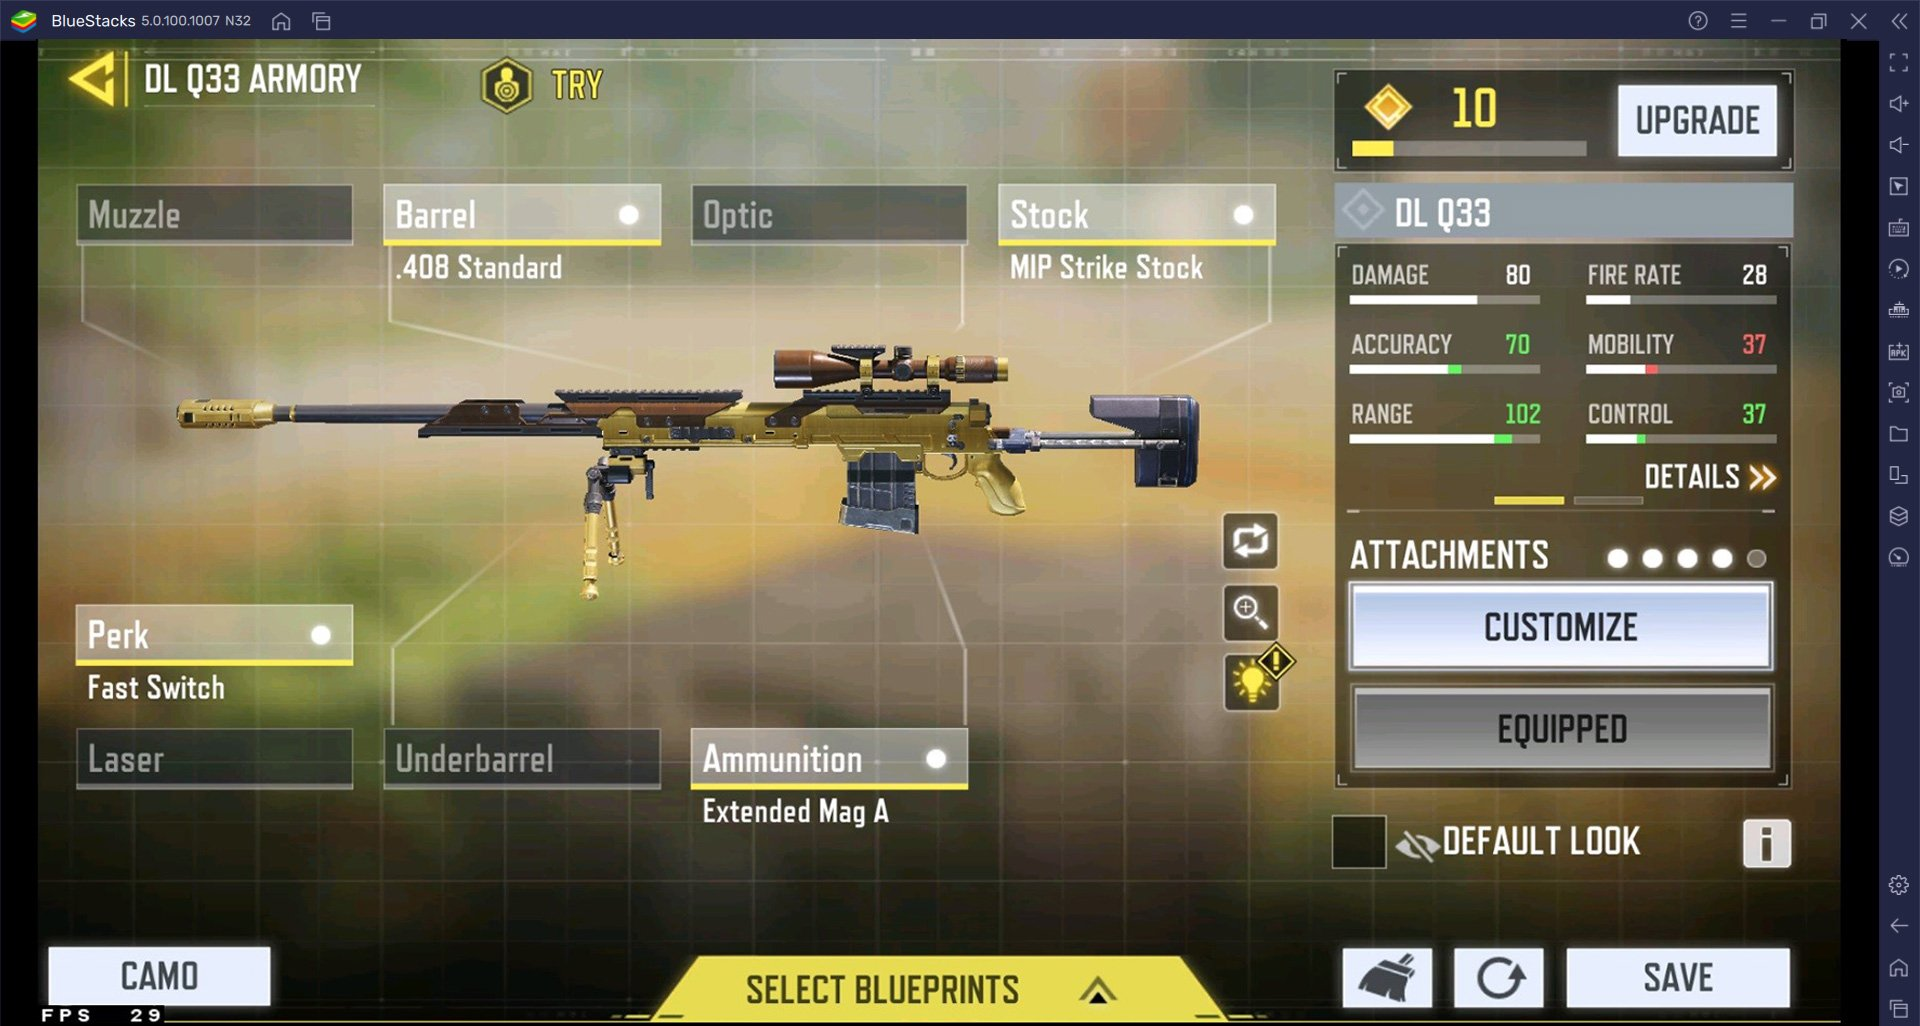 Call of Duty: Mobile Locus Sniping Guide For Headshots